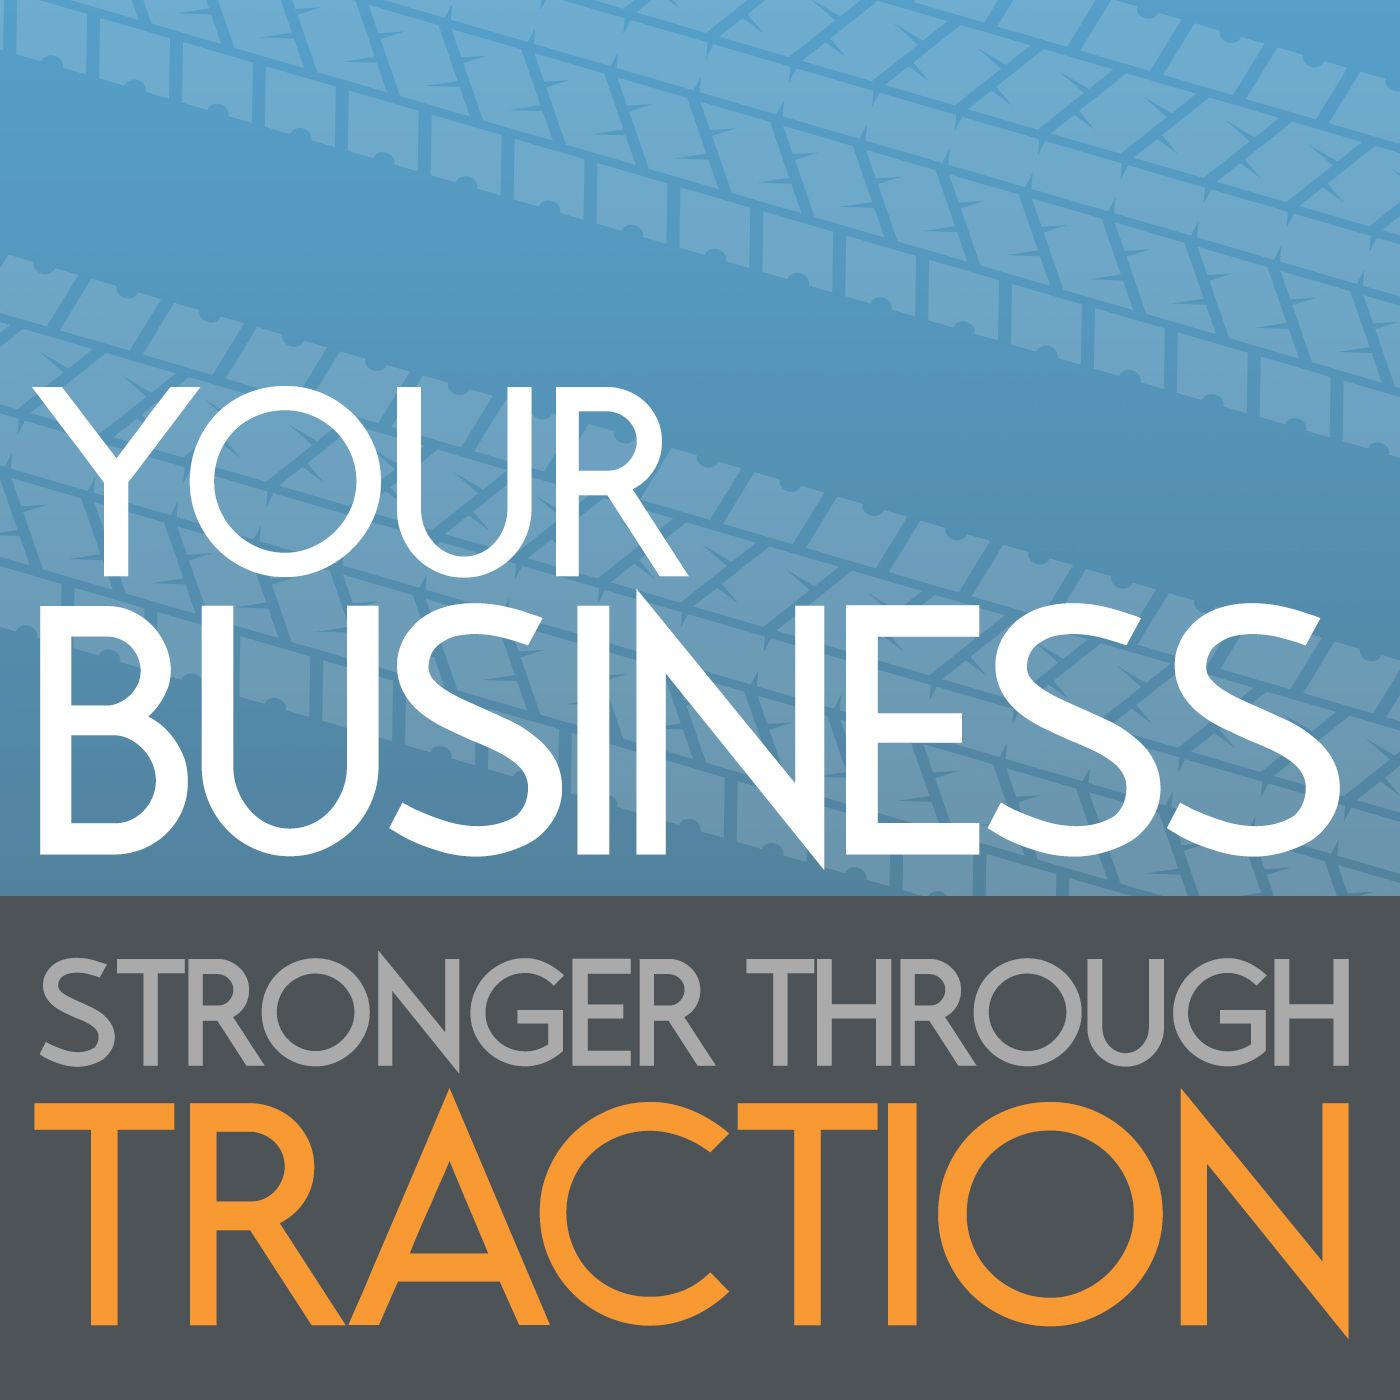 Your Business, Stronger Through Traction